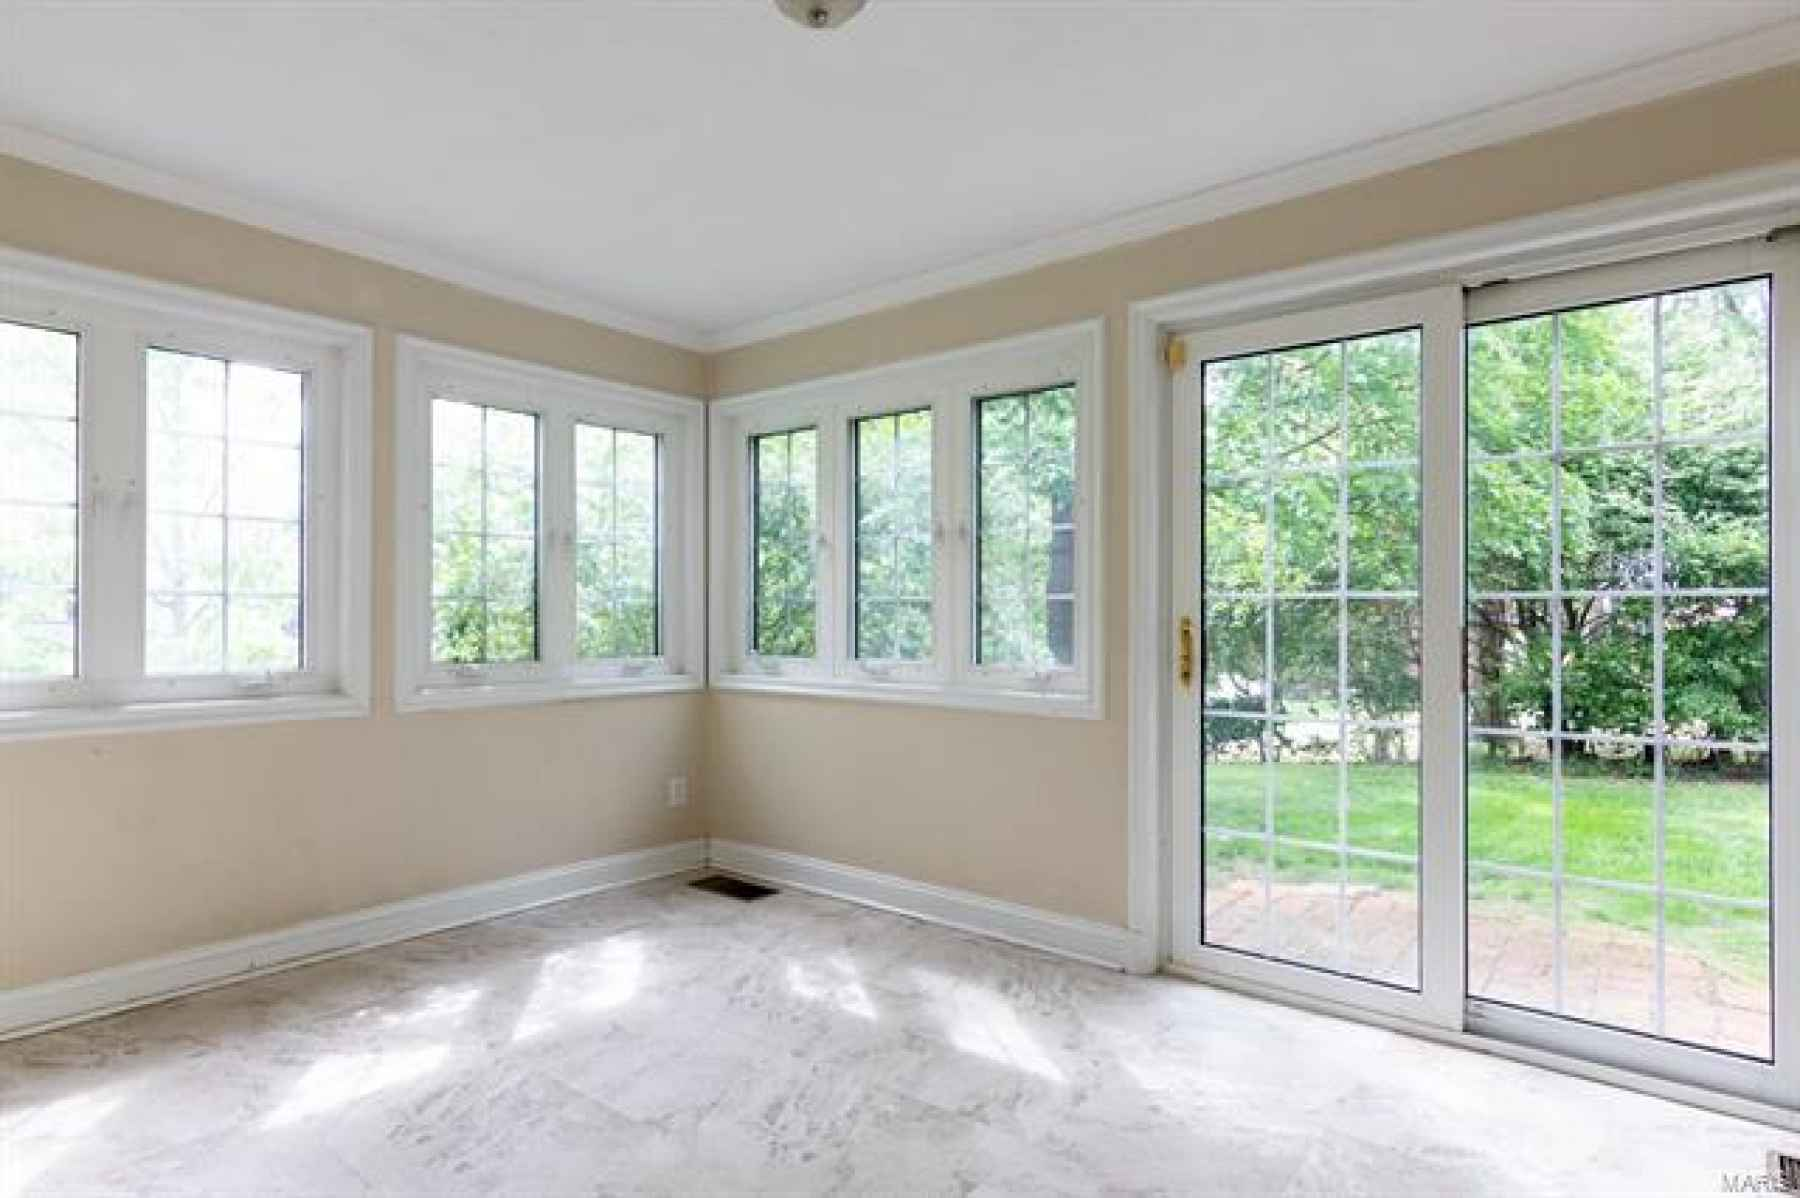 Breakfast Room off Kitchen Features Windows on Two Walls, Sliding Doors to the Backyard.